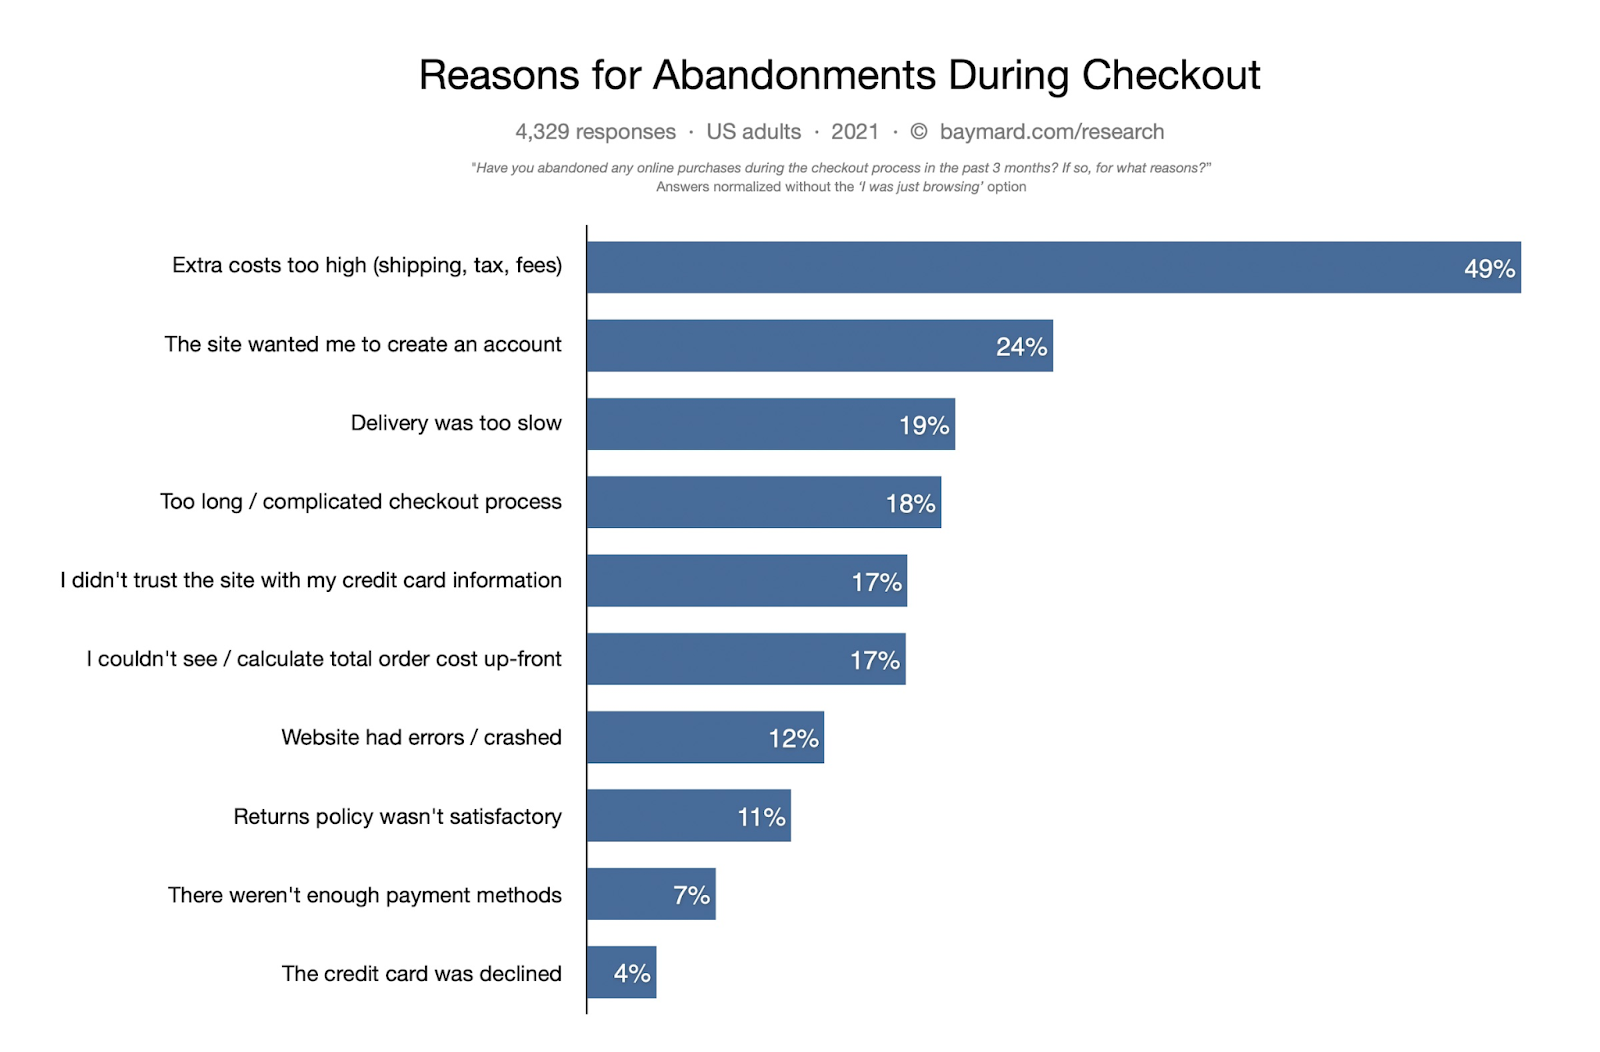 Cart abandonment reasons to target with proactive triggers.